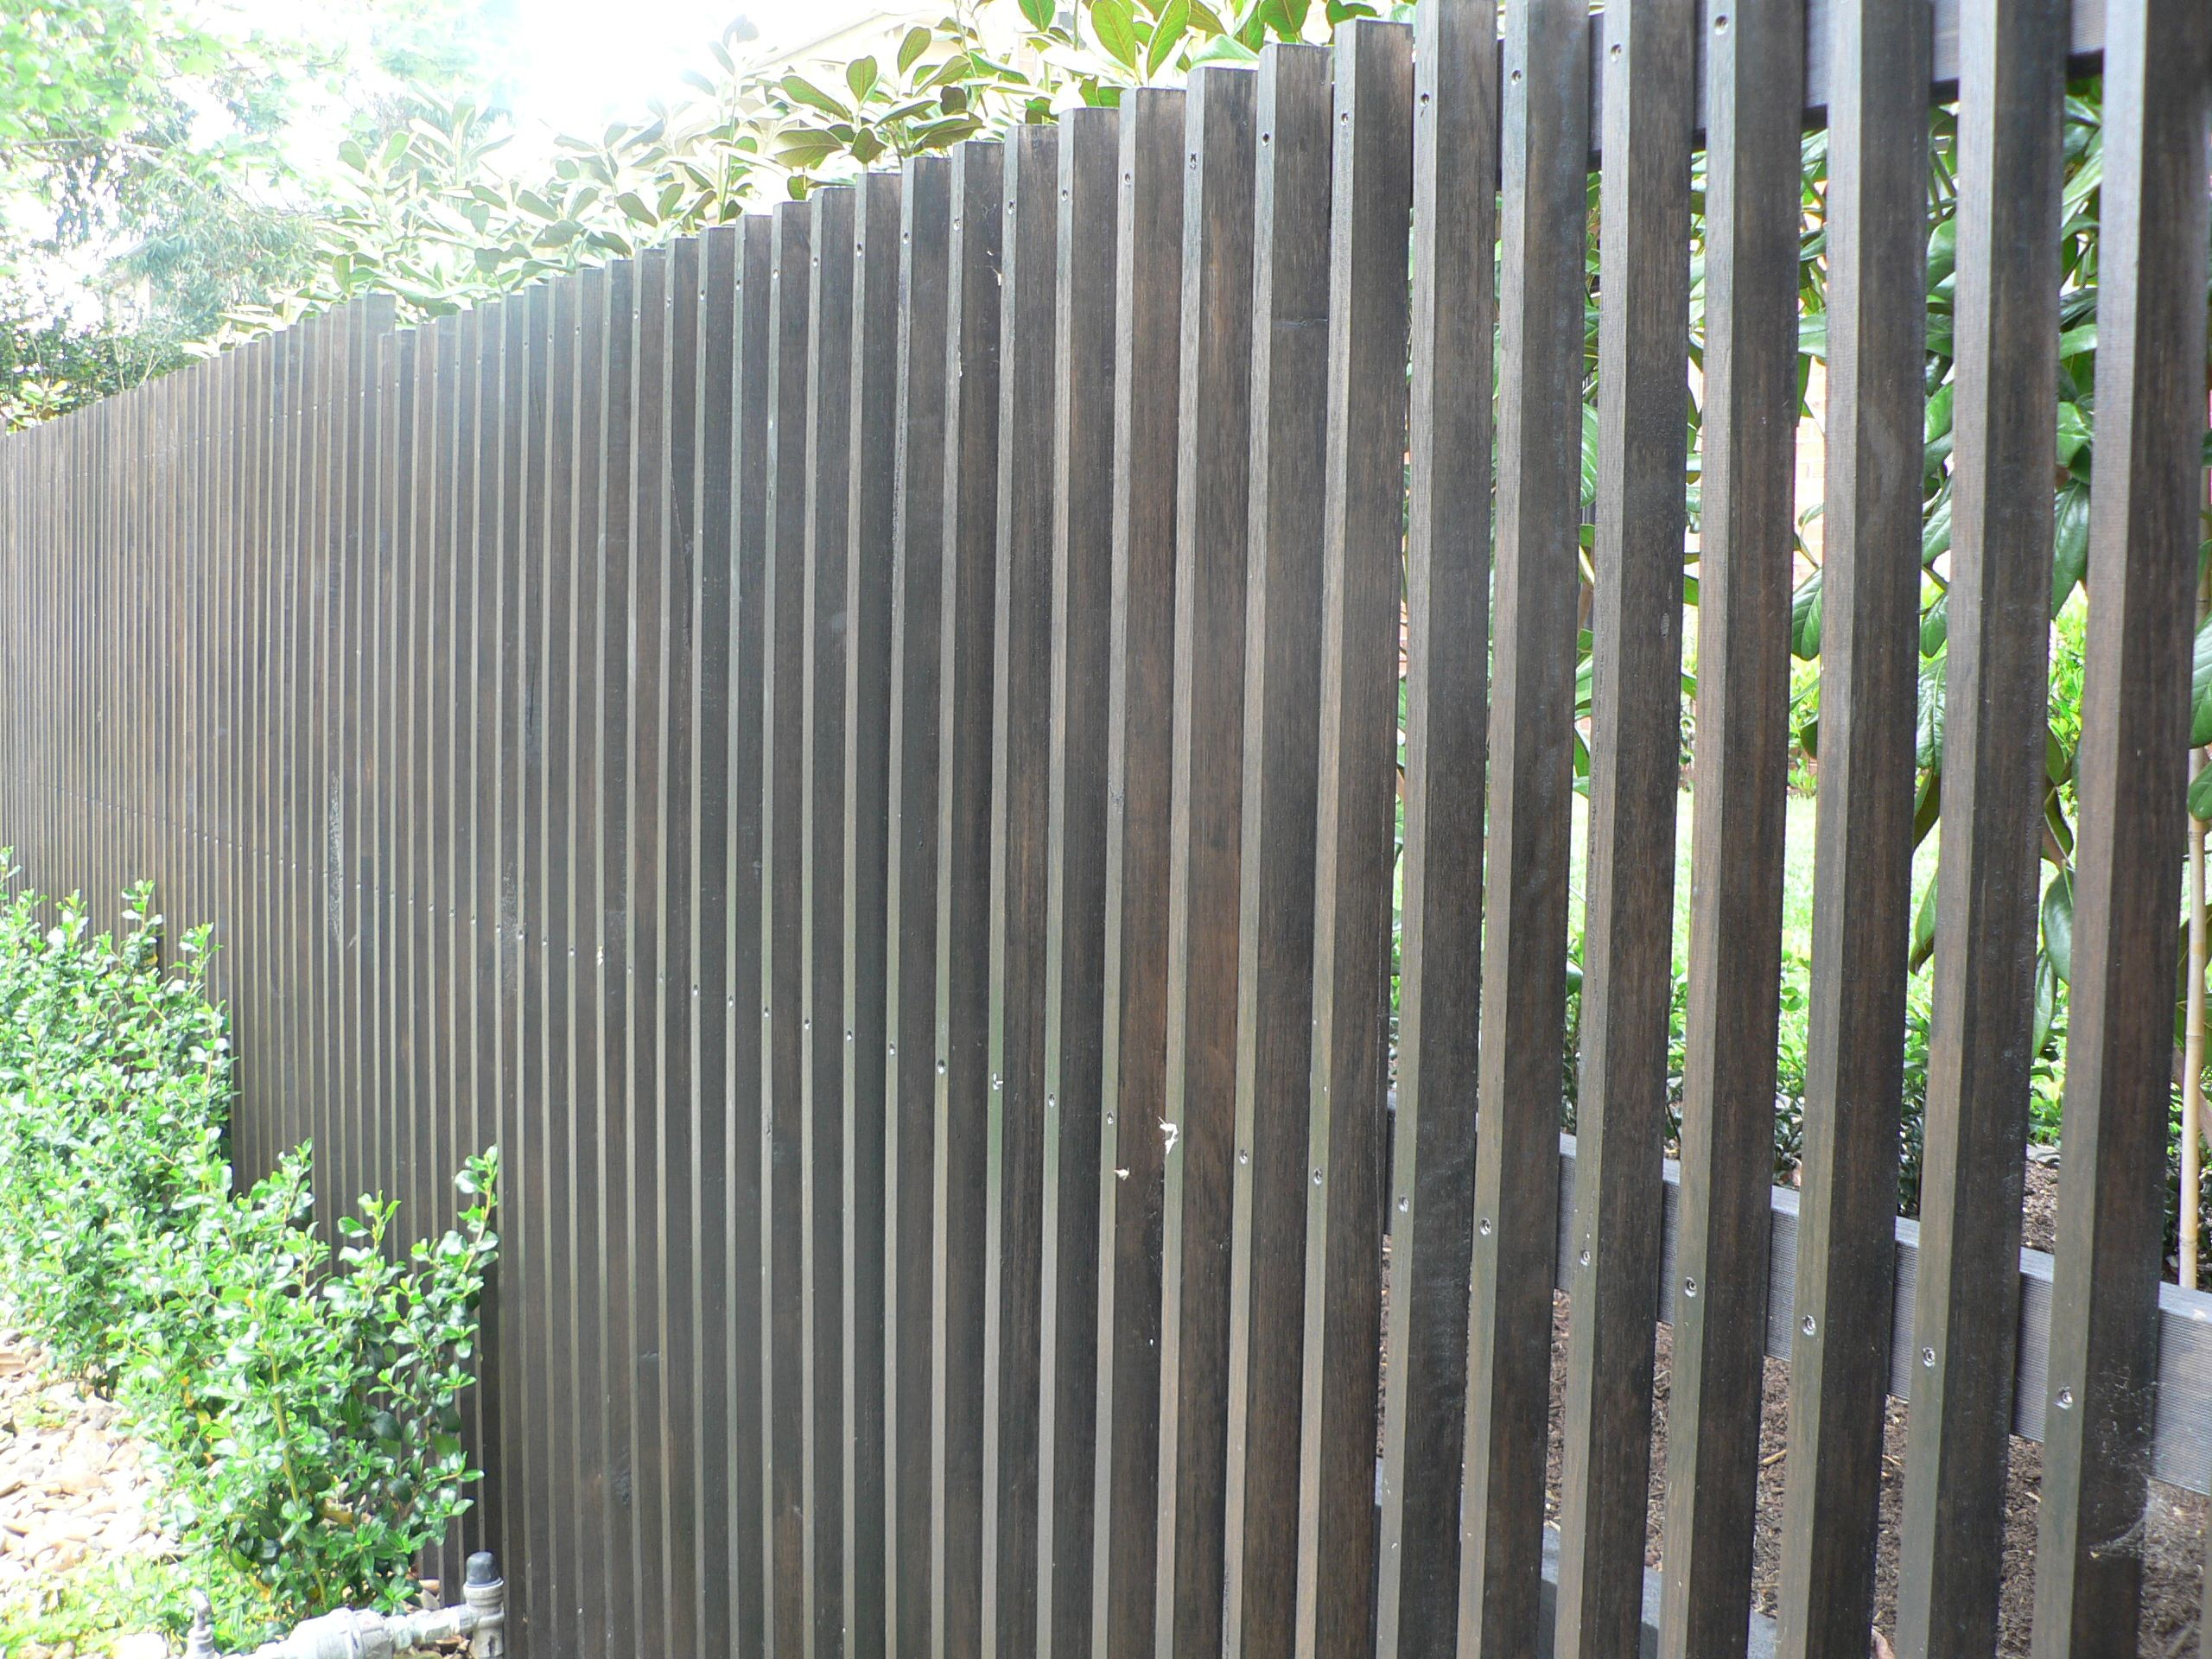 Vertical Timber Pickets Stained In A Rich Chocolate